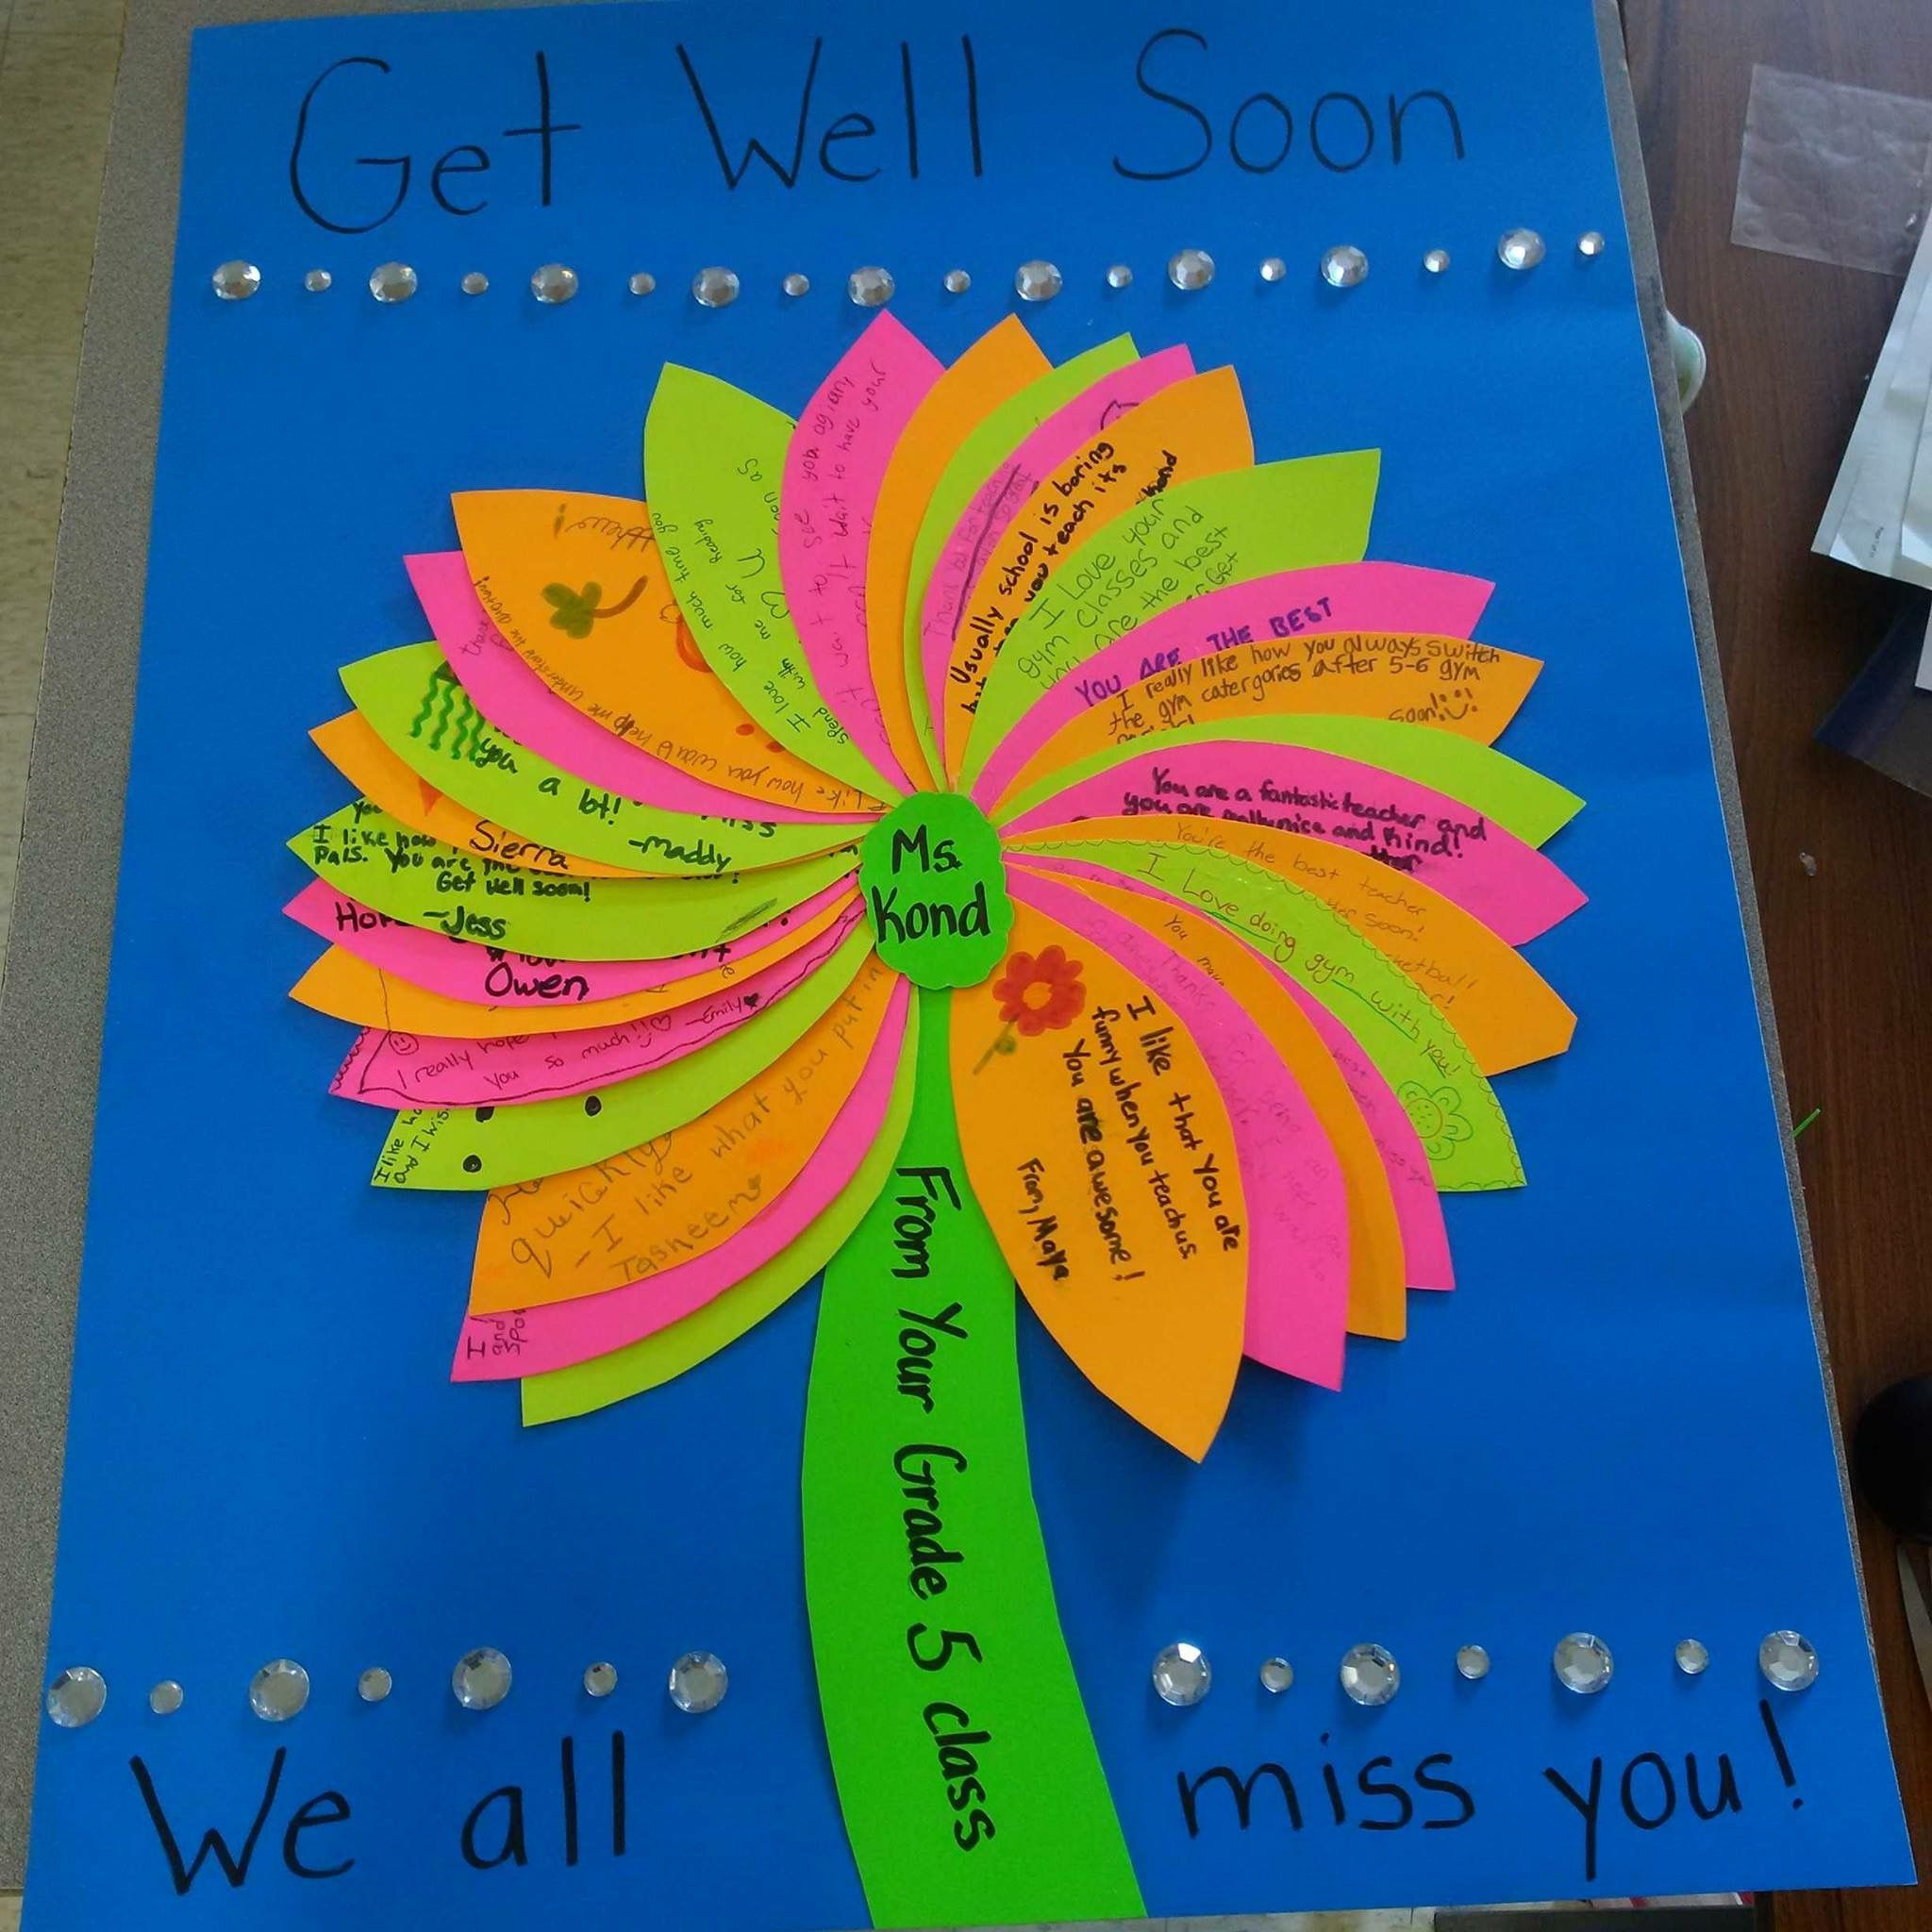 Get well soon or thank you card idea for a teacher from